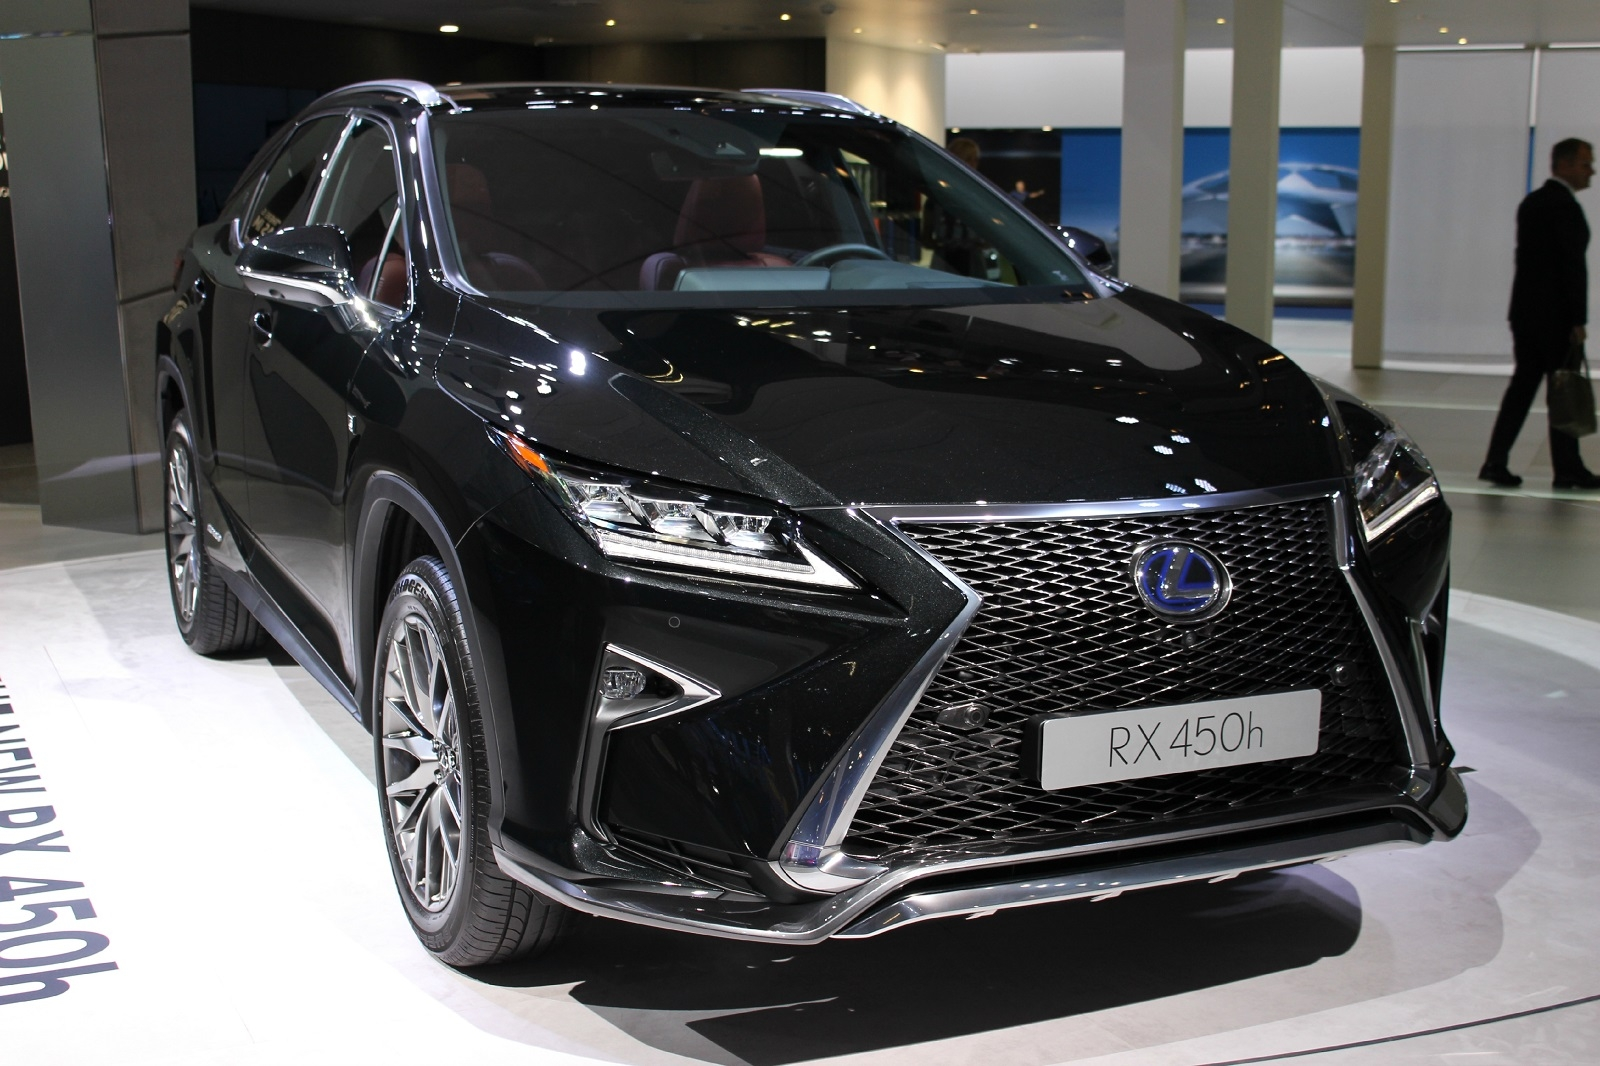 lexus rx450h predator hybride vid o en direct du salon. Black Bedroom Furniture Sets. Home Design Ideas